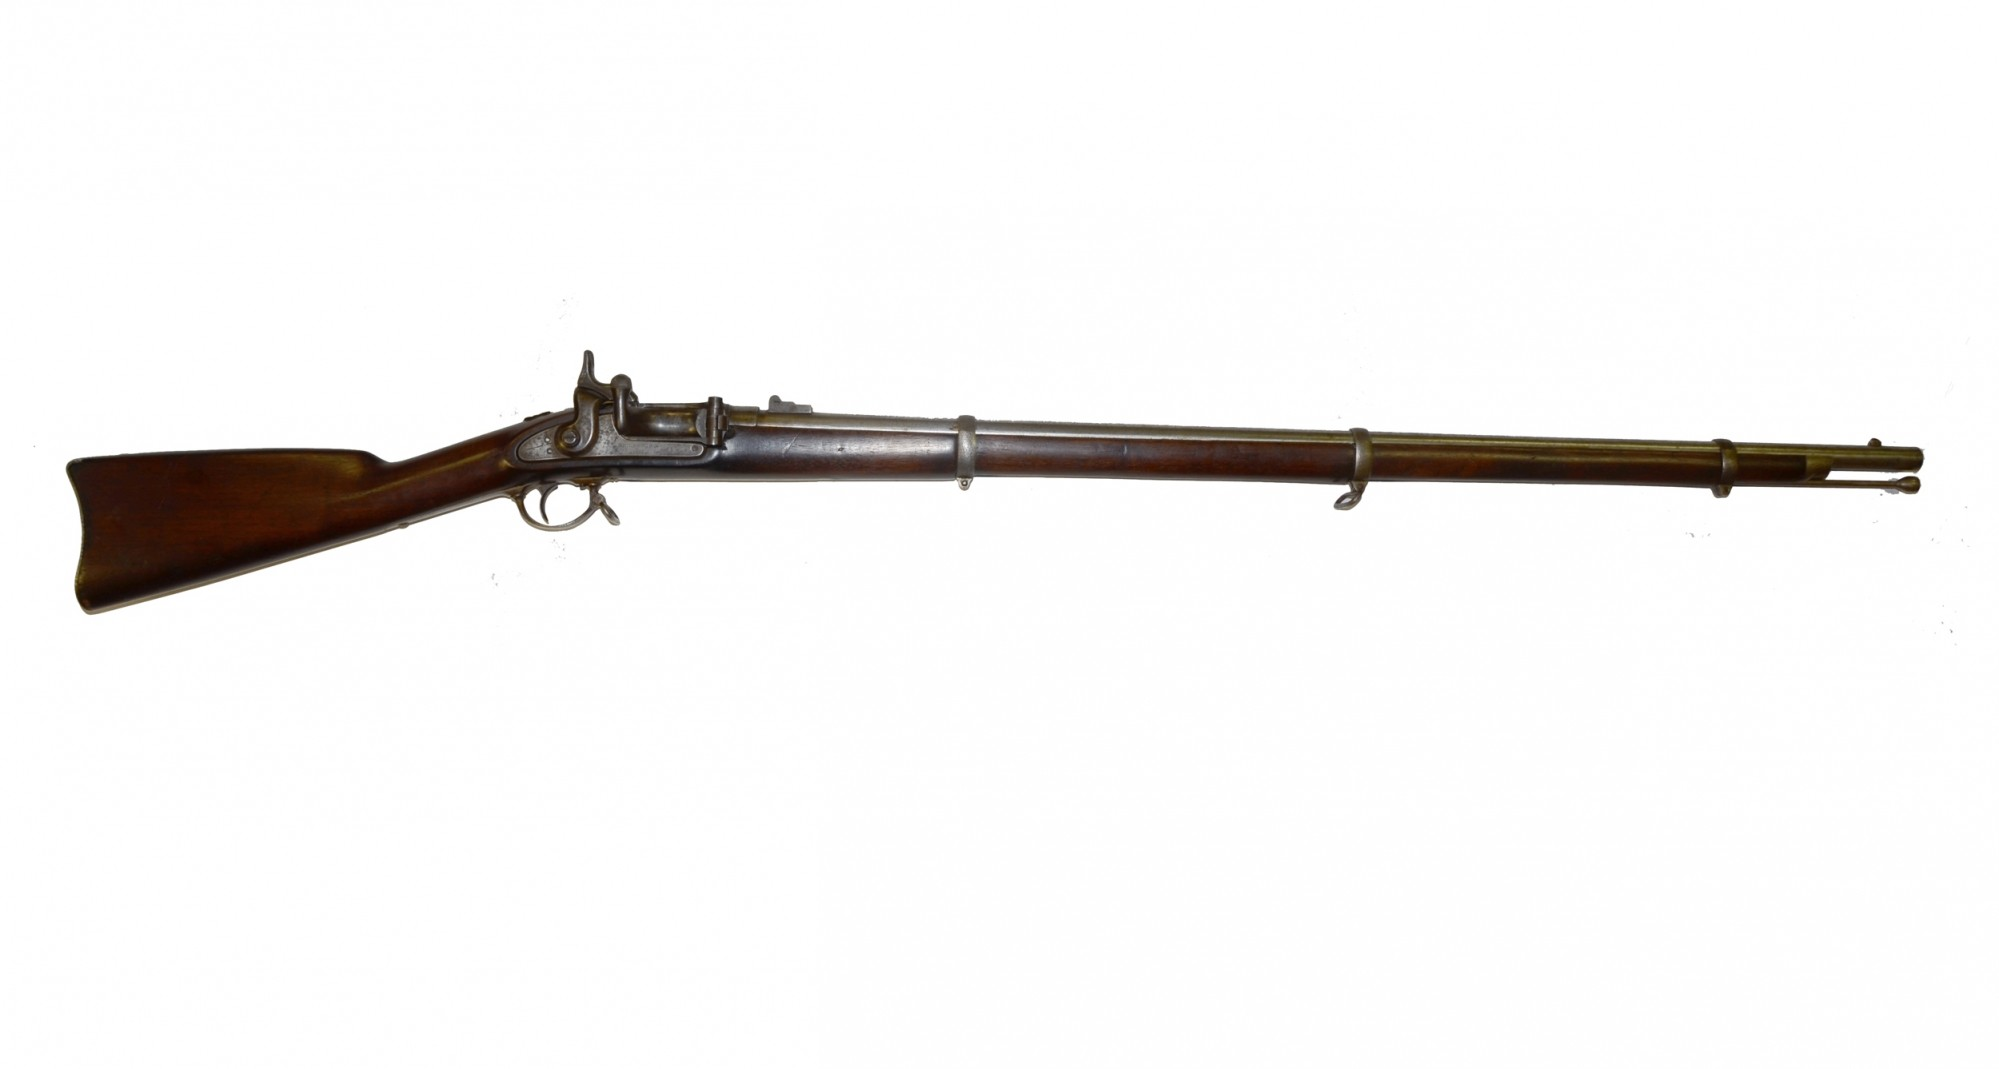 M1861 BRIDESBURG CONTRACT RIFLE-MUSKET WITH THE NEEDHAM CONVERSION TO A BREECHLOADING SYSTEM